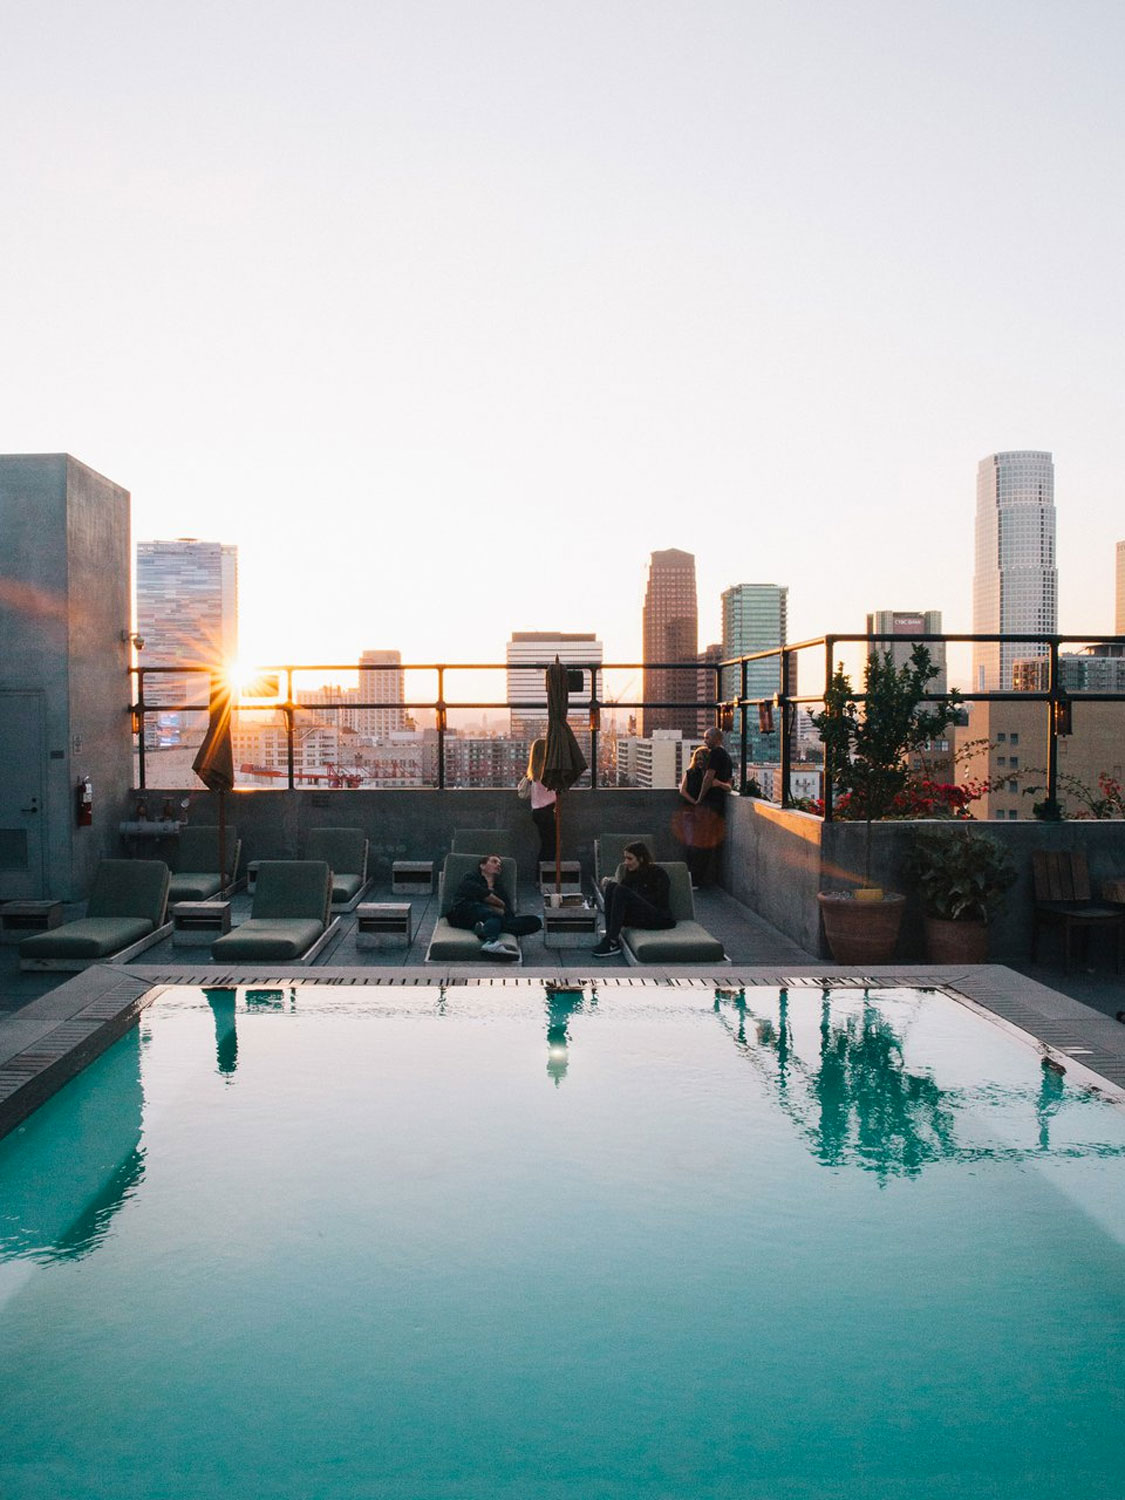 The_Ink_Collective_Inside_Ink_Daily_Grind_Luxury_News_Los_Angeles_Travel_Guide_Ace_Hotel_5.jpg